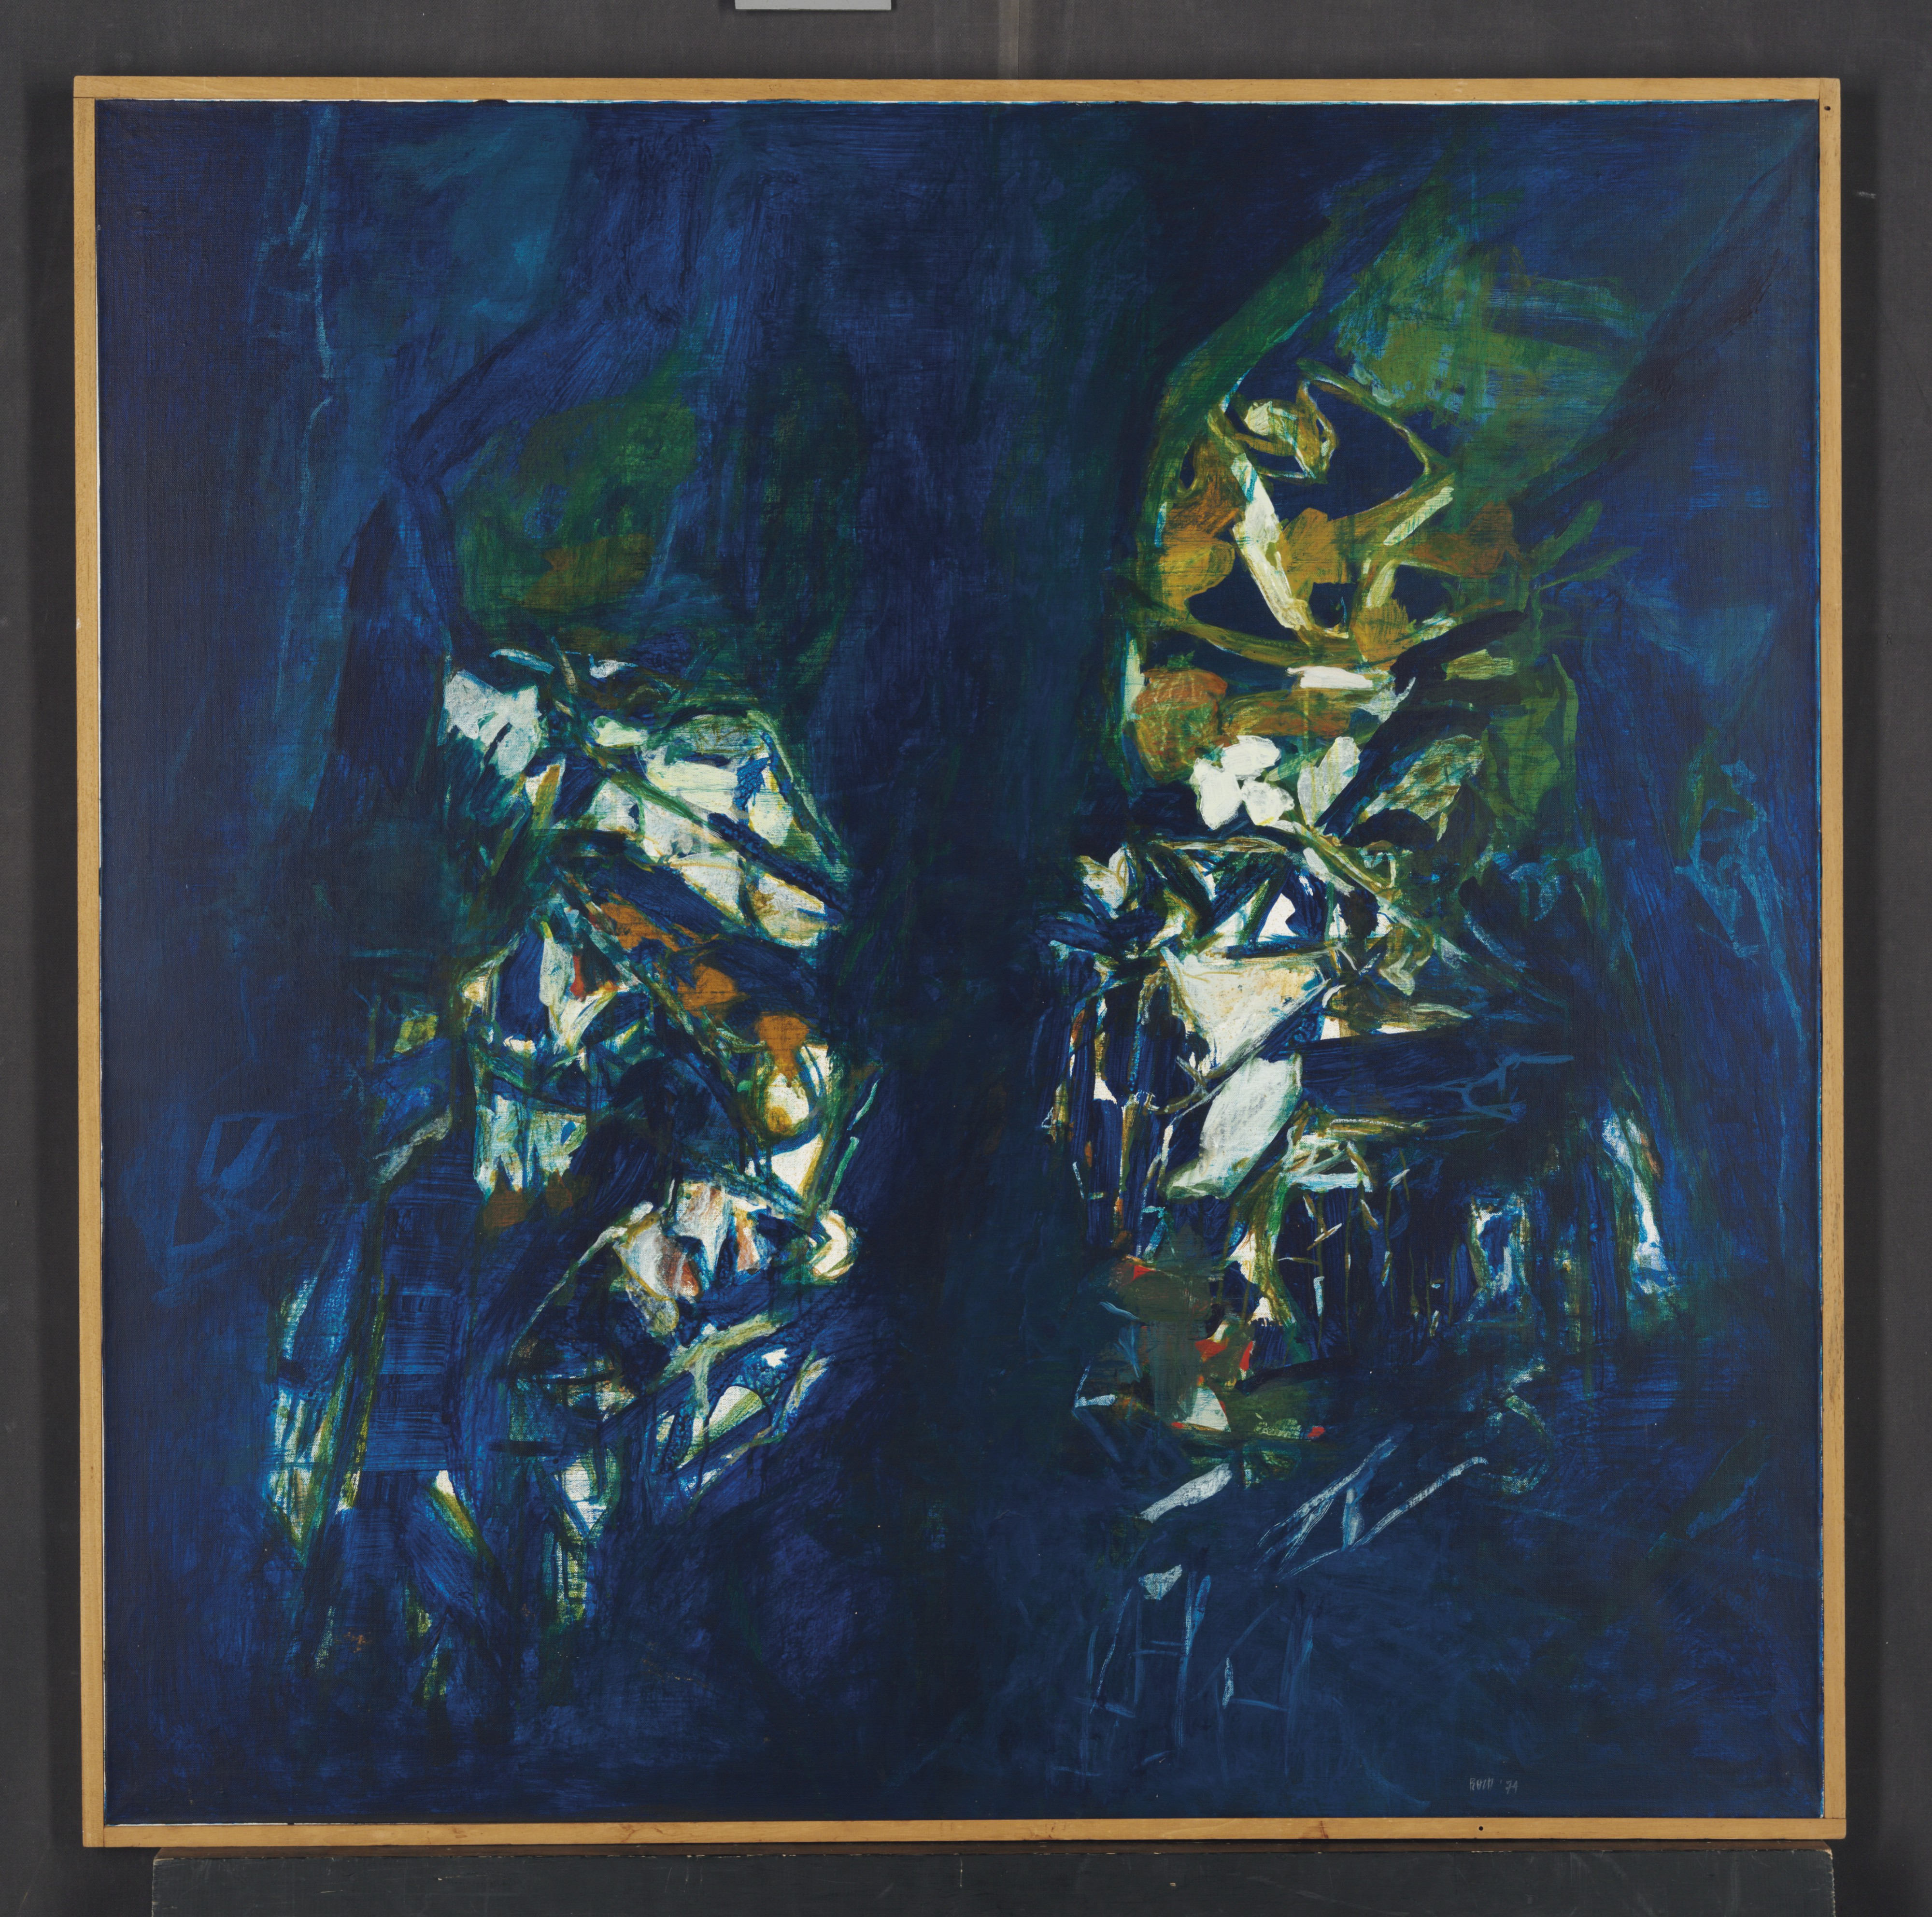 La Mer, S H Raza. Syed Haider Raza (1922-2016) was one of the first of the Progressive Artists' Group to make the move from India to Europe, settling in Paris in 1950. Painted in 1974, 'La Mer' is an important painting from a key period in Raza's career, when, after many years working within the style of the École de Paris, he began to integrate vital elements of his Indian childhood and cultural heritage into his paintings. 'La Mer' exemplifies Raza's use of colour as well as his symbolic engagement with nature. Raza felt that nature was a tremendous source of power that could not be portrayed in traditional landscapes. It had to be captured through his vivid palette and gestural brush strokes. (Estimate: $200,000-300,000)